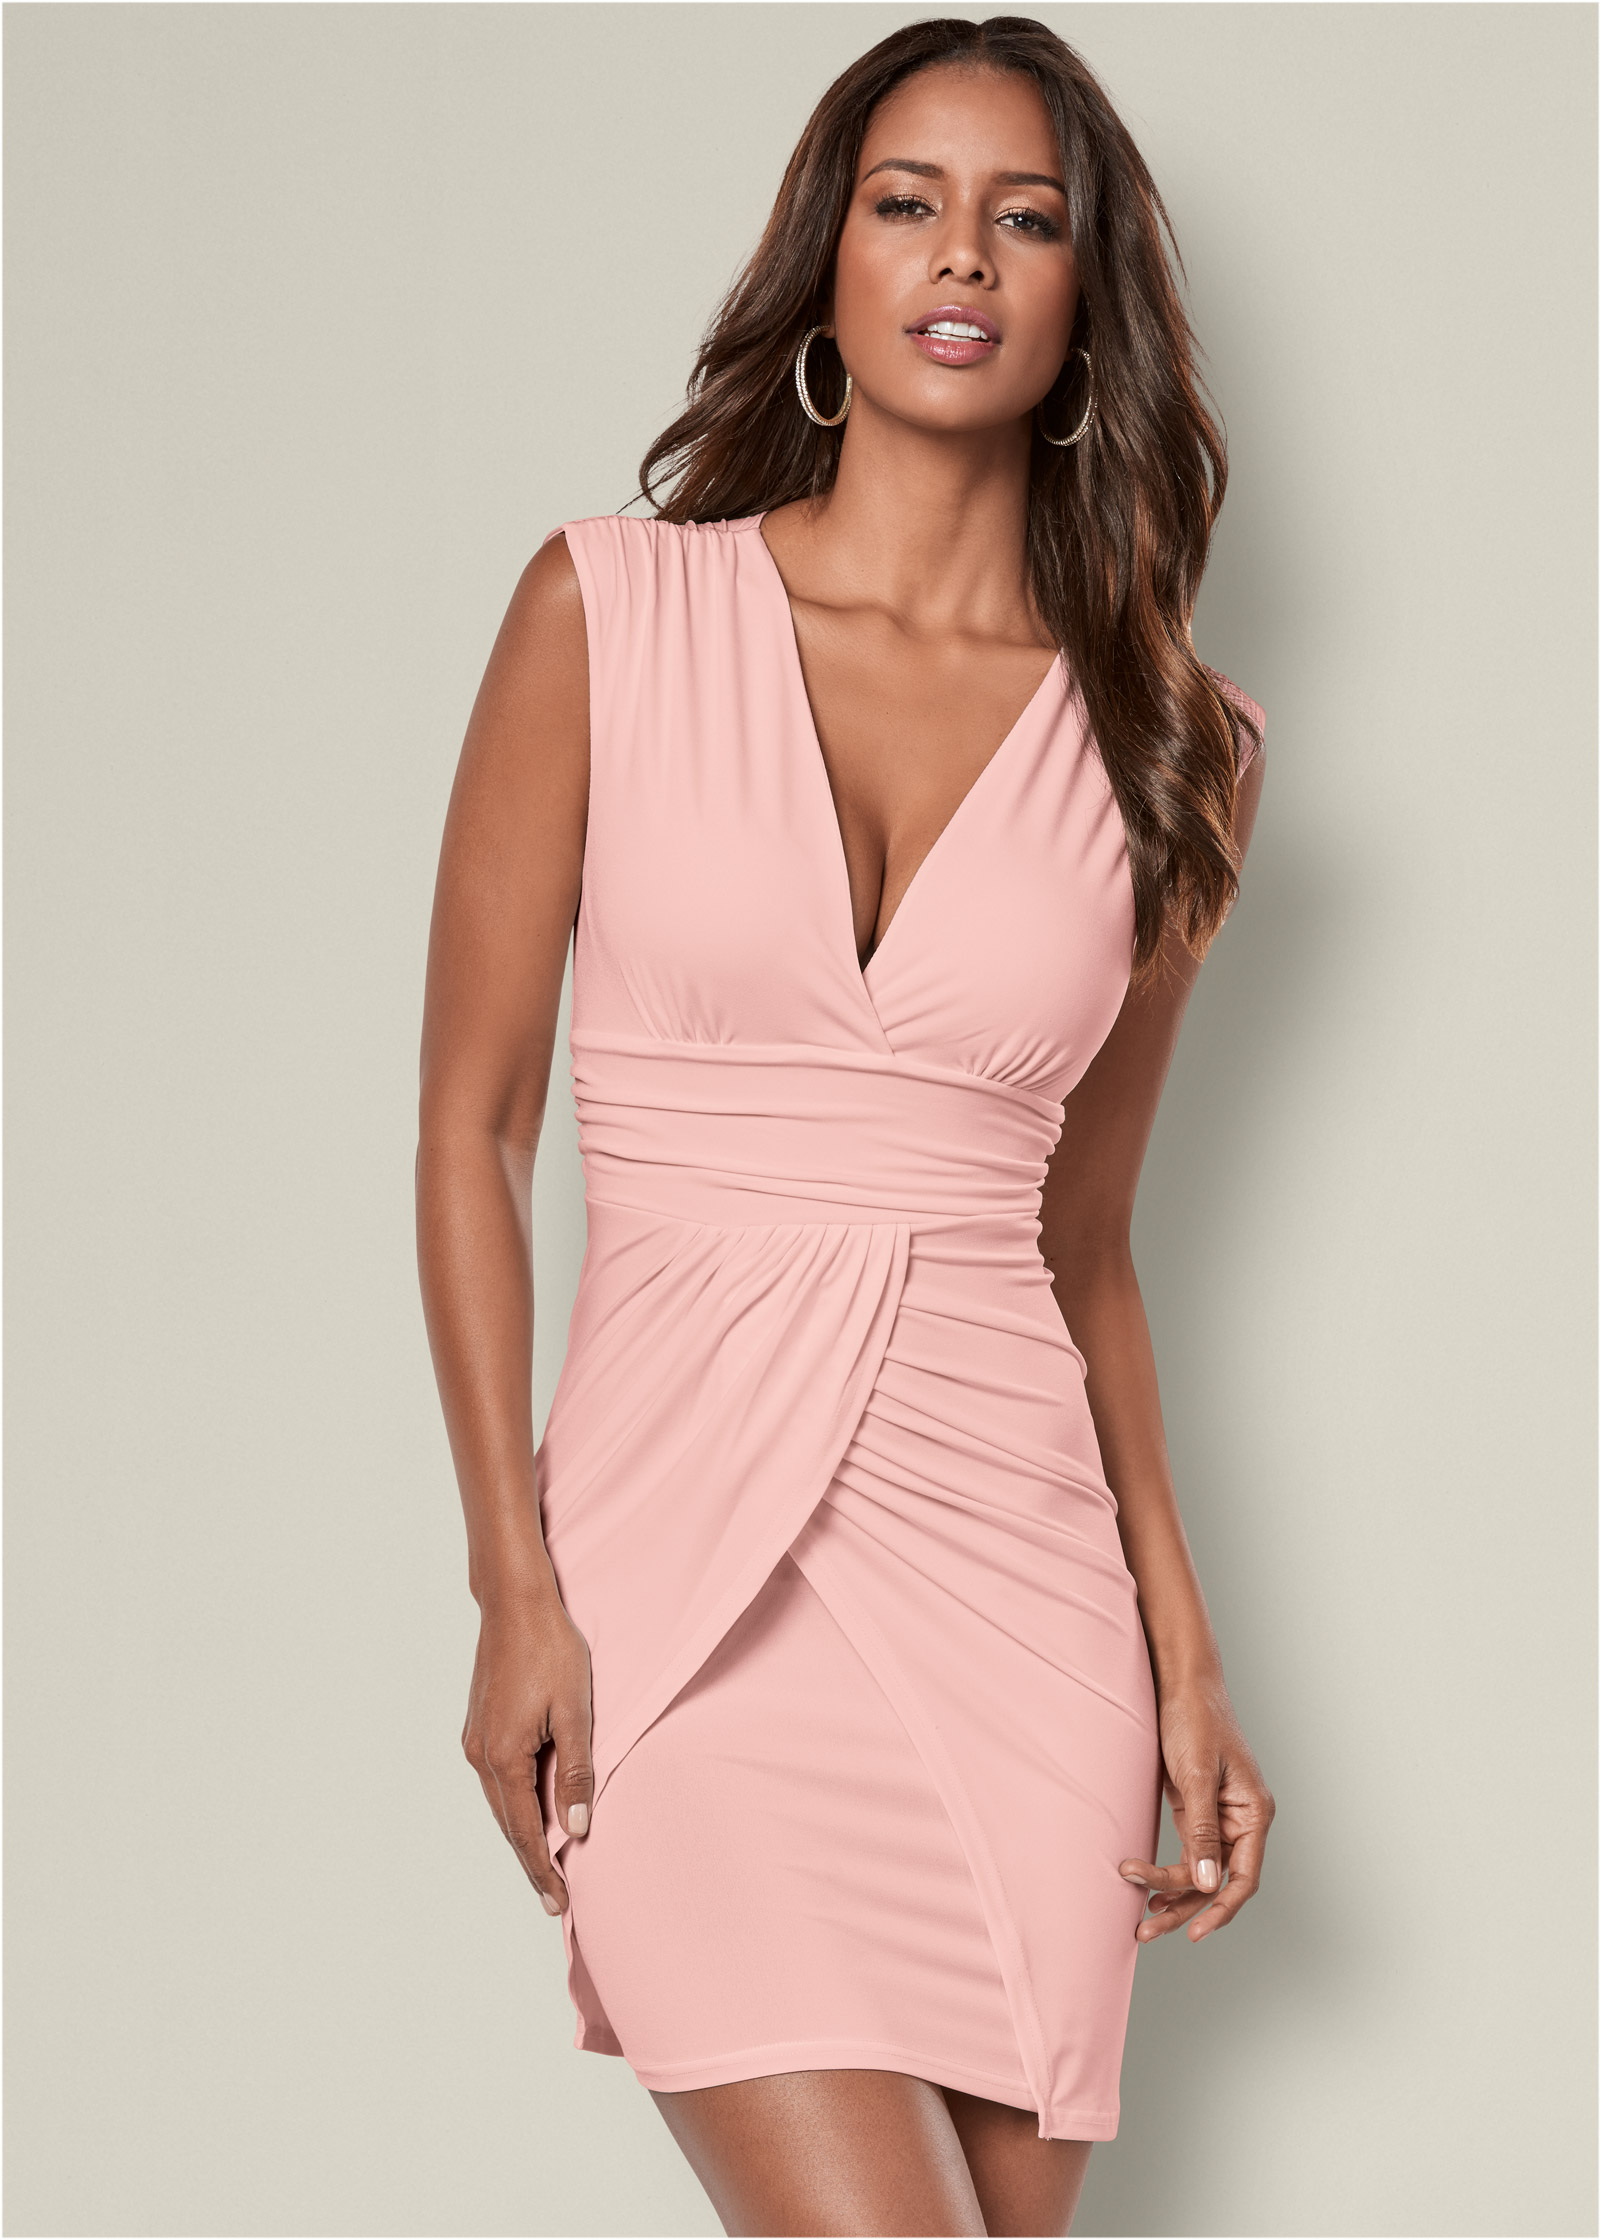 Nice Party Dresses for Women